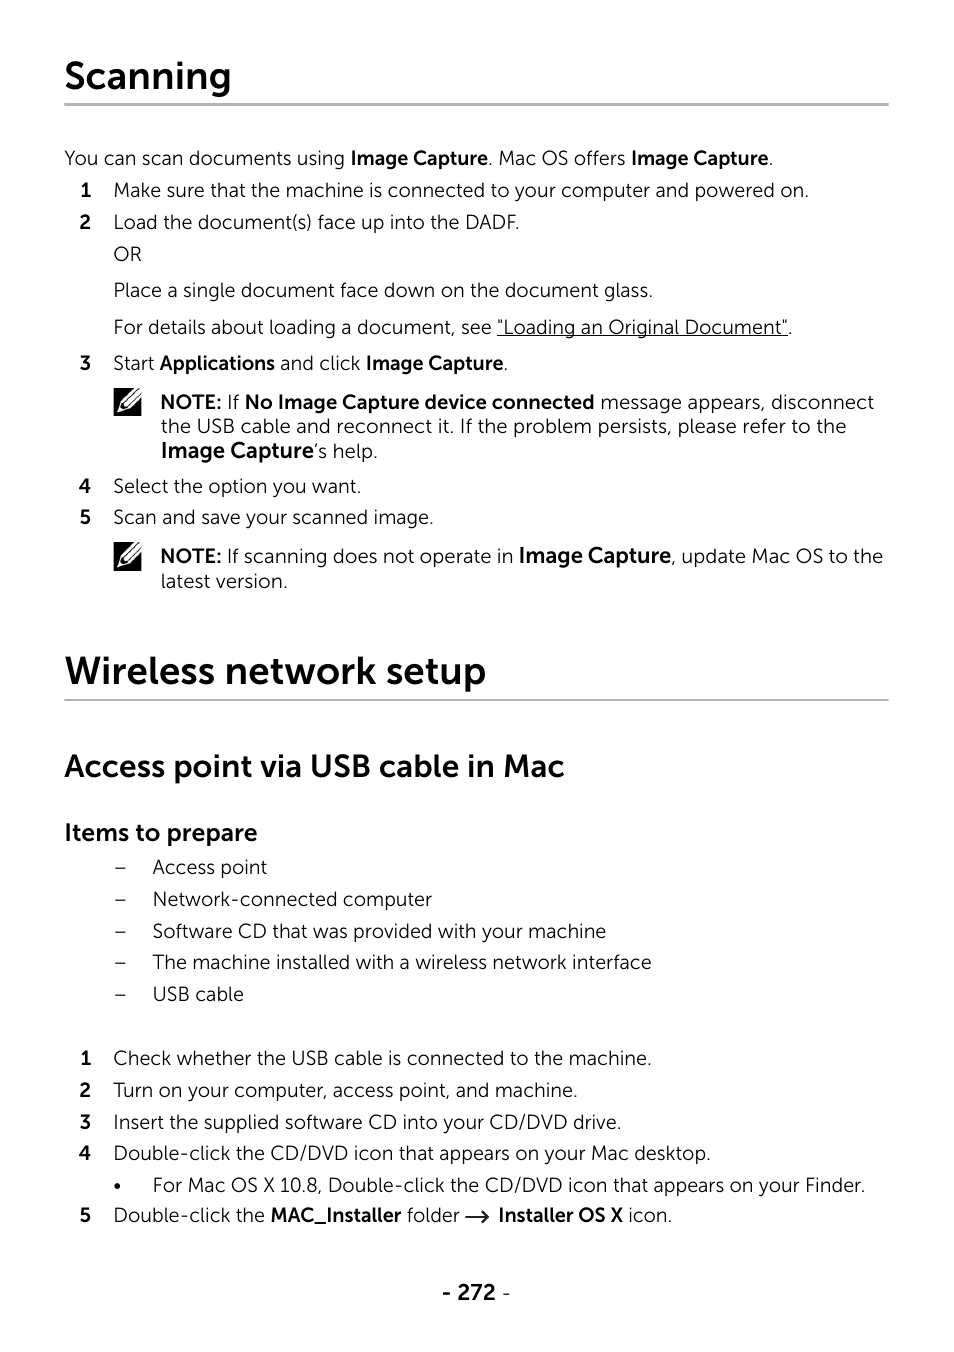 Scanning, Wireless network setup, Access point via usb cable in mac